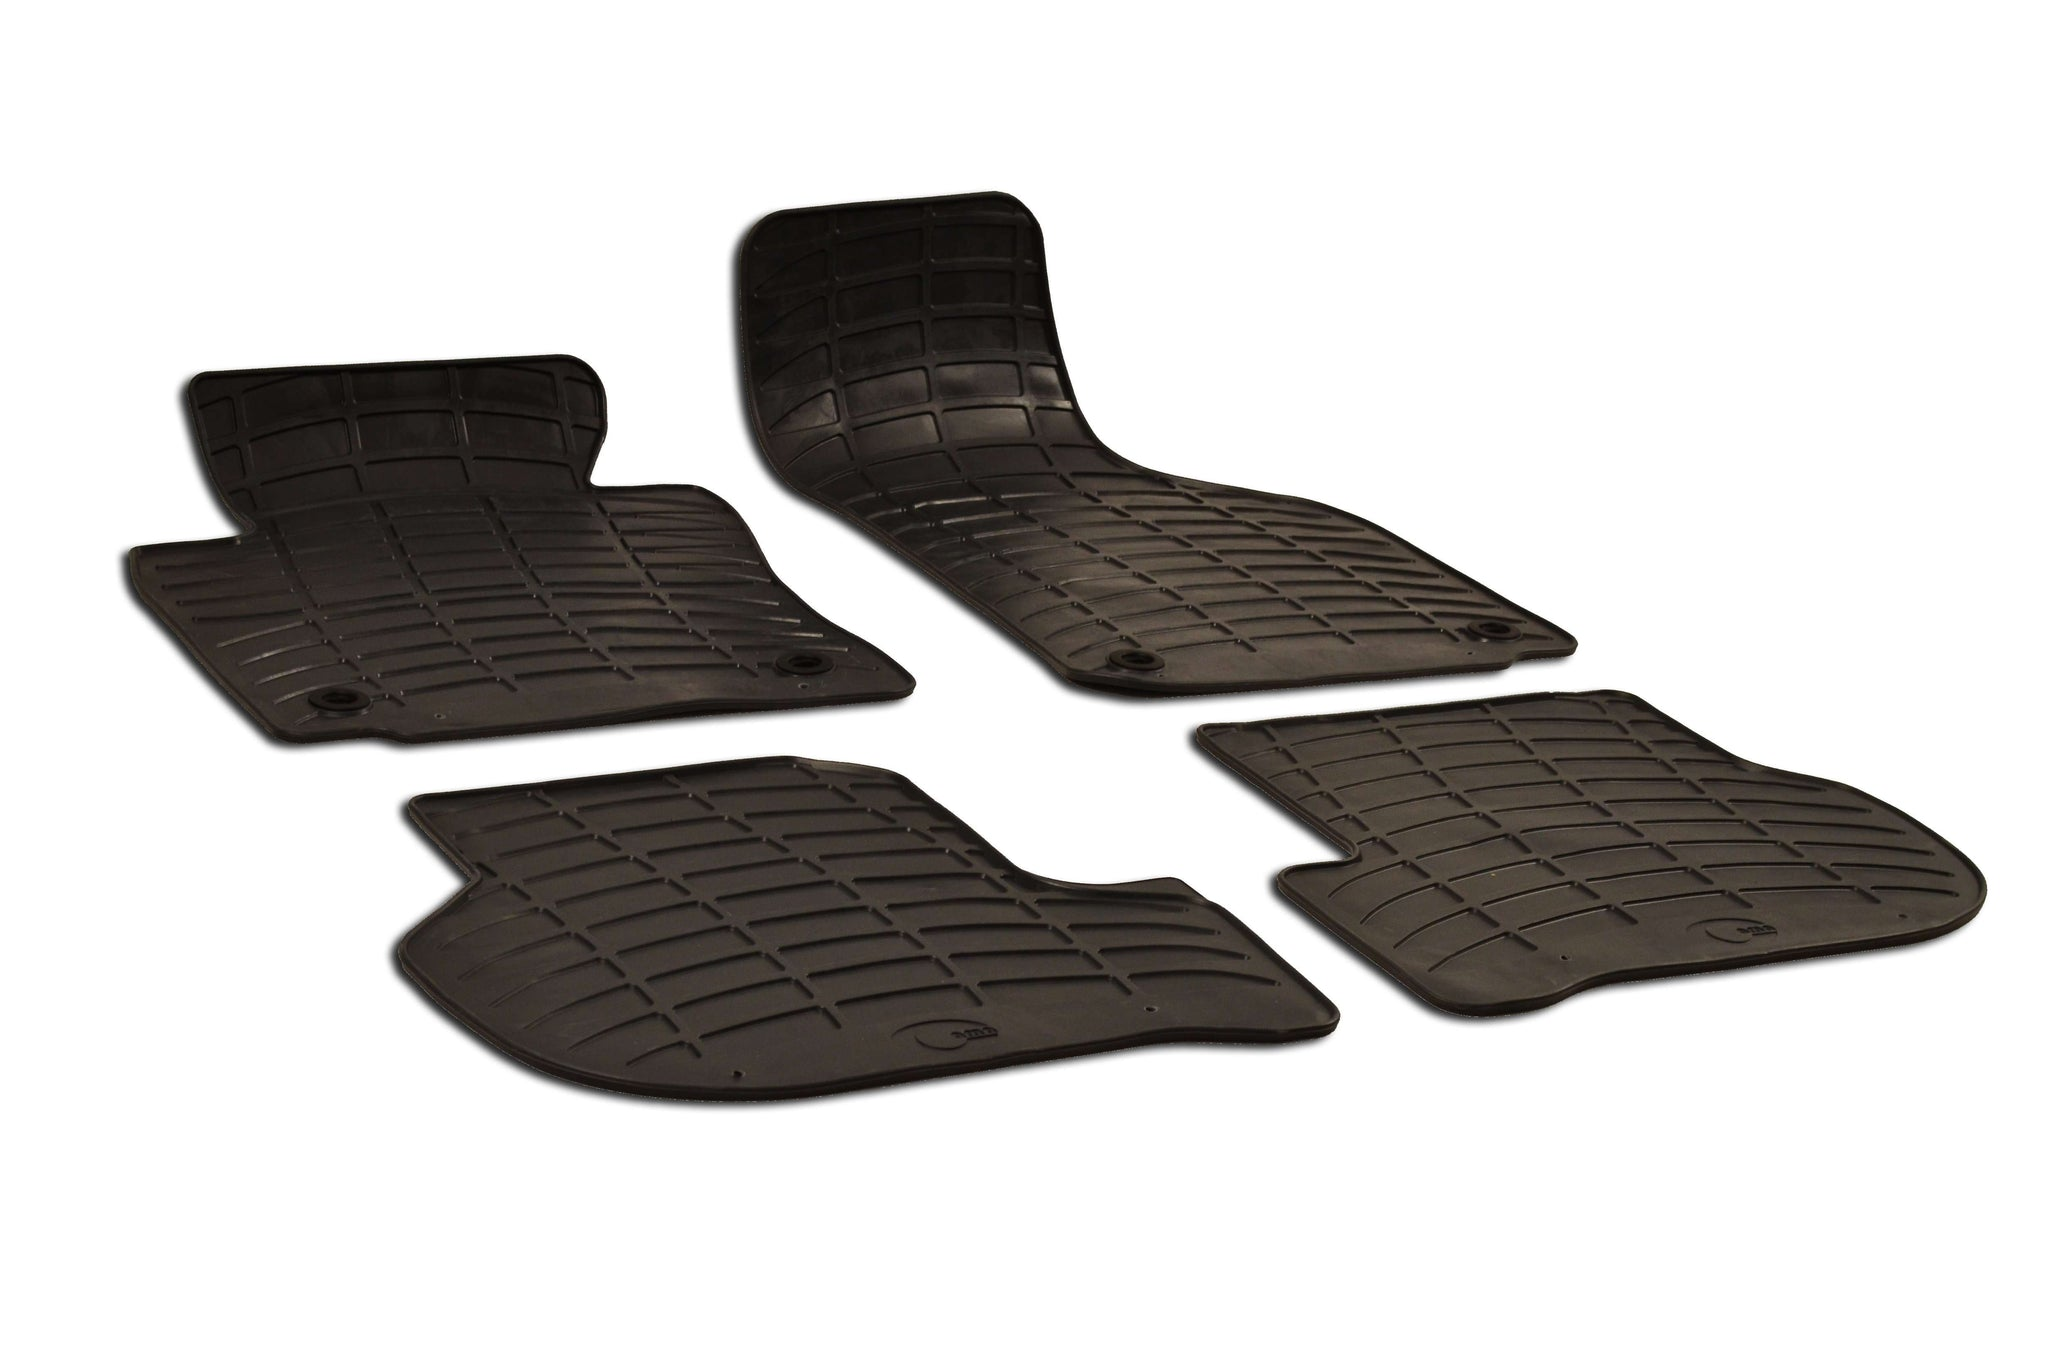 Volkswagen Golf  2003 Set of 4 Black Rubber OE Fit All Weather Car Floor Mats